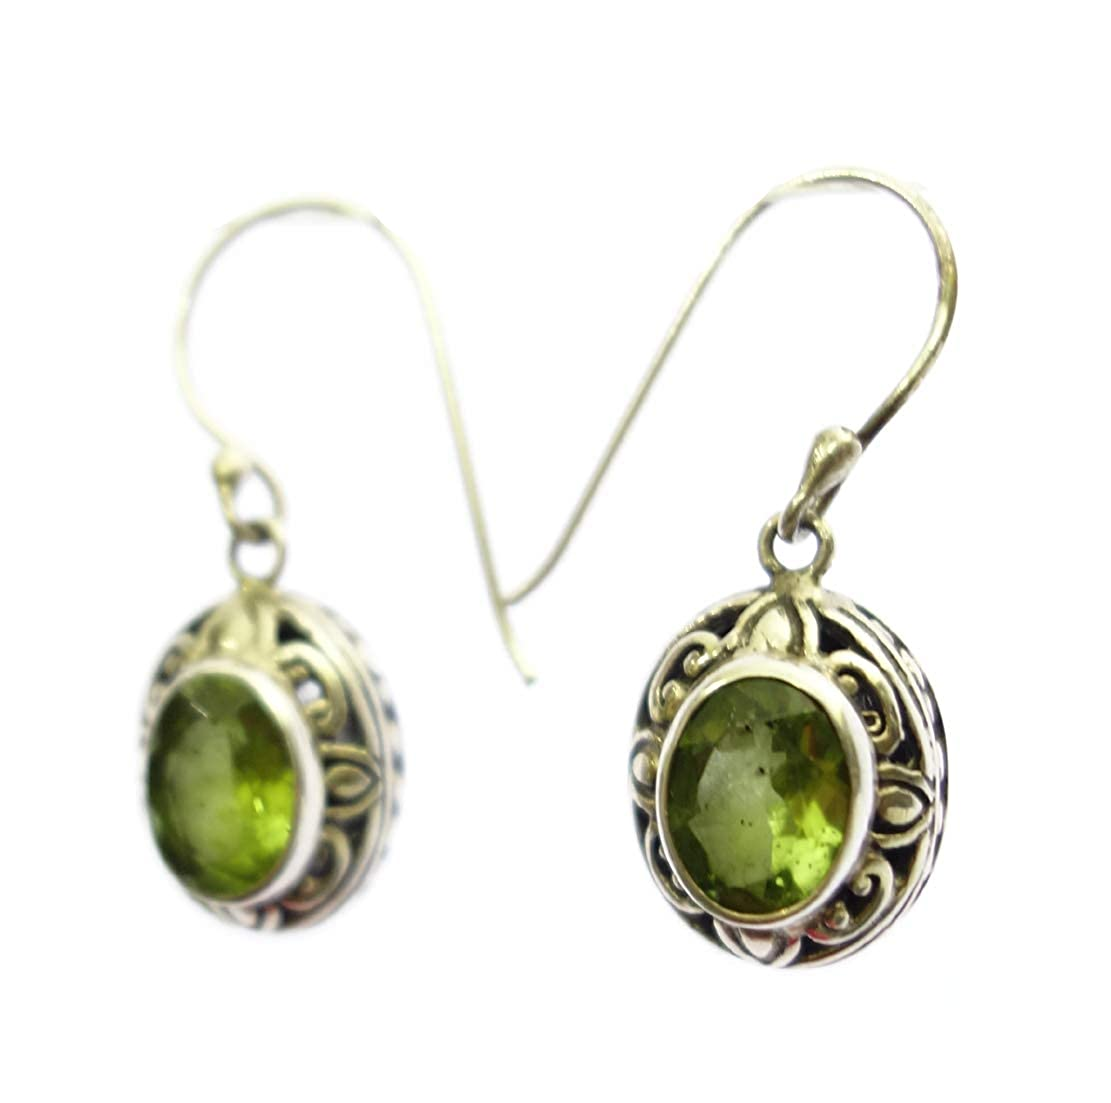 AUGUST BIRTH STONE UNIQUE DESIGNER EARRING JEWELRY BY ARTISANS HANDMADE FASHION DROP DANGLE 925 STERLING SILVER NATURAL PERIDOT GEMSTONE EARRING FOR WOMEN /& GIRLS